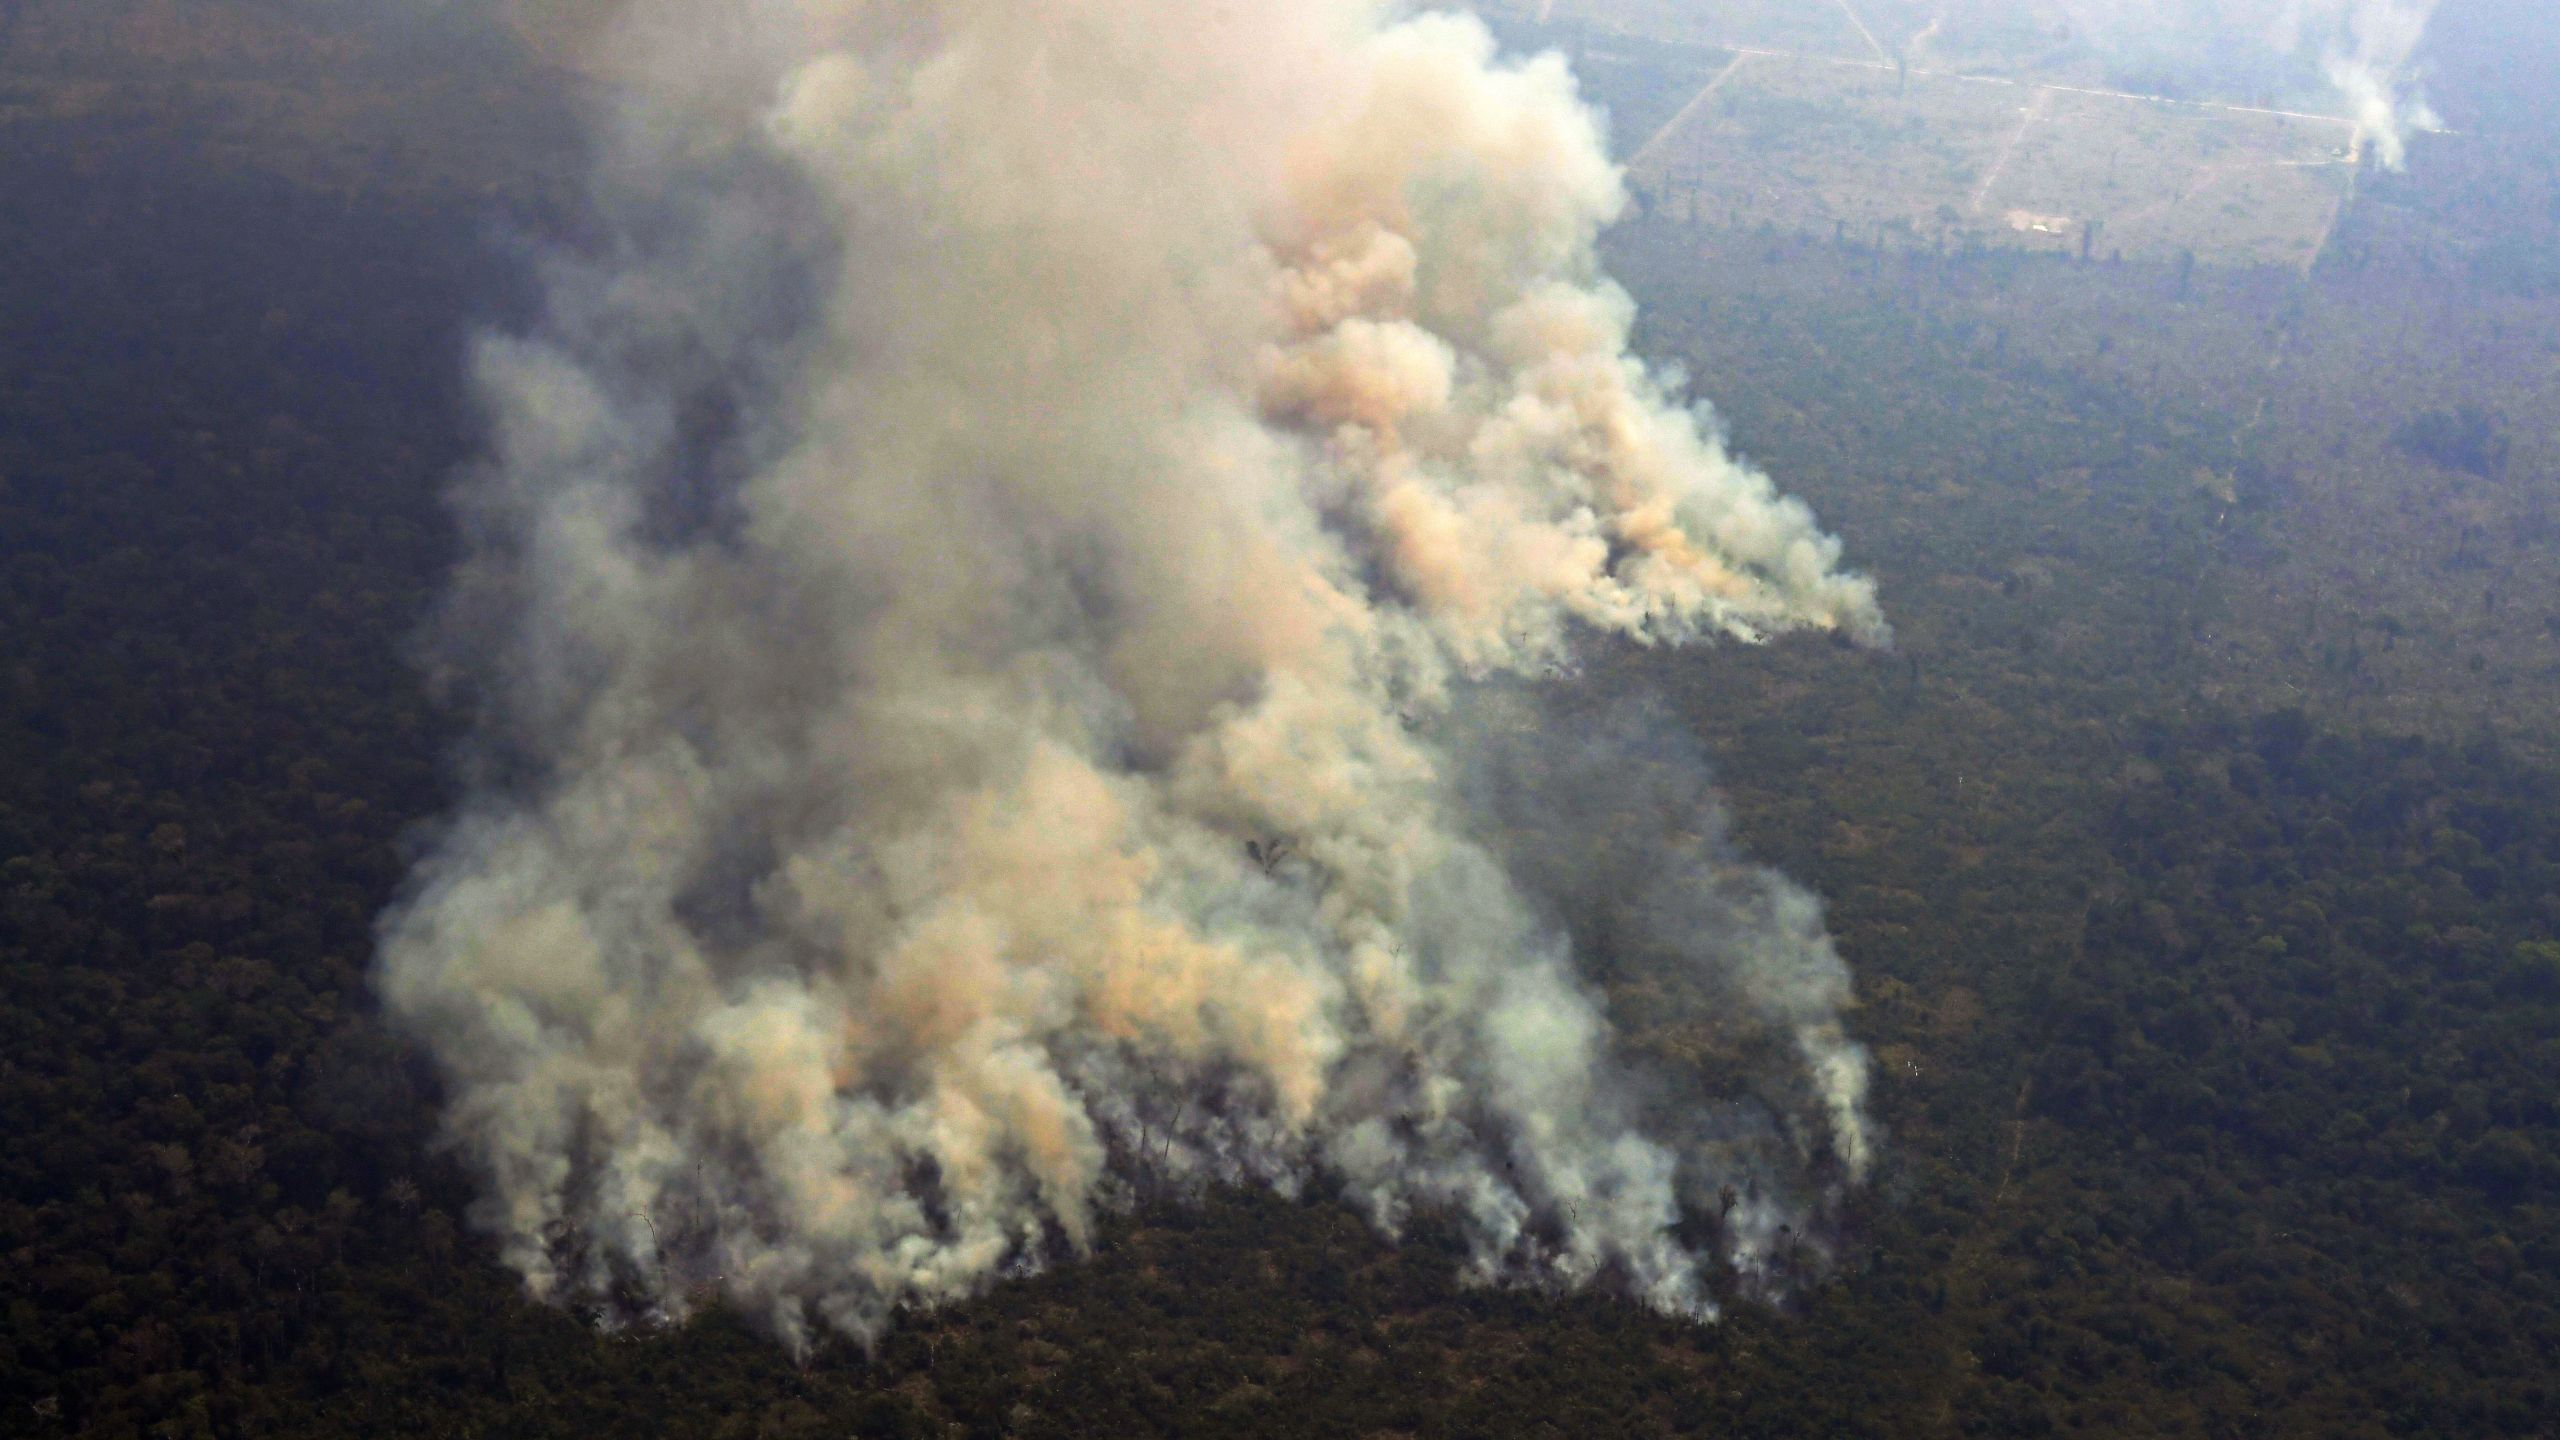 Aerial picture showing smoke from a two-kilometre-long stretch of fire billowing from the Amazon rainforest about 65 km from Porto Velho, in the state of Rondonia, in northern Brazil, on August 23, 2019. - Bolsonaro said Friday he is considering deploying the army to help combat fires raging in the Amazon rainforest, after news about the fires have sparked protests around the world. The latest official figures show 76,720 forest fires were recorded in Brazil so far this year -- the highest number for any year since 2013. More than half are in the Amazon. (Photo: CARL DE SOUZA/AFP/Getty Images)